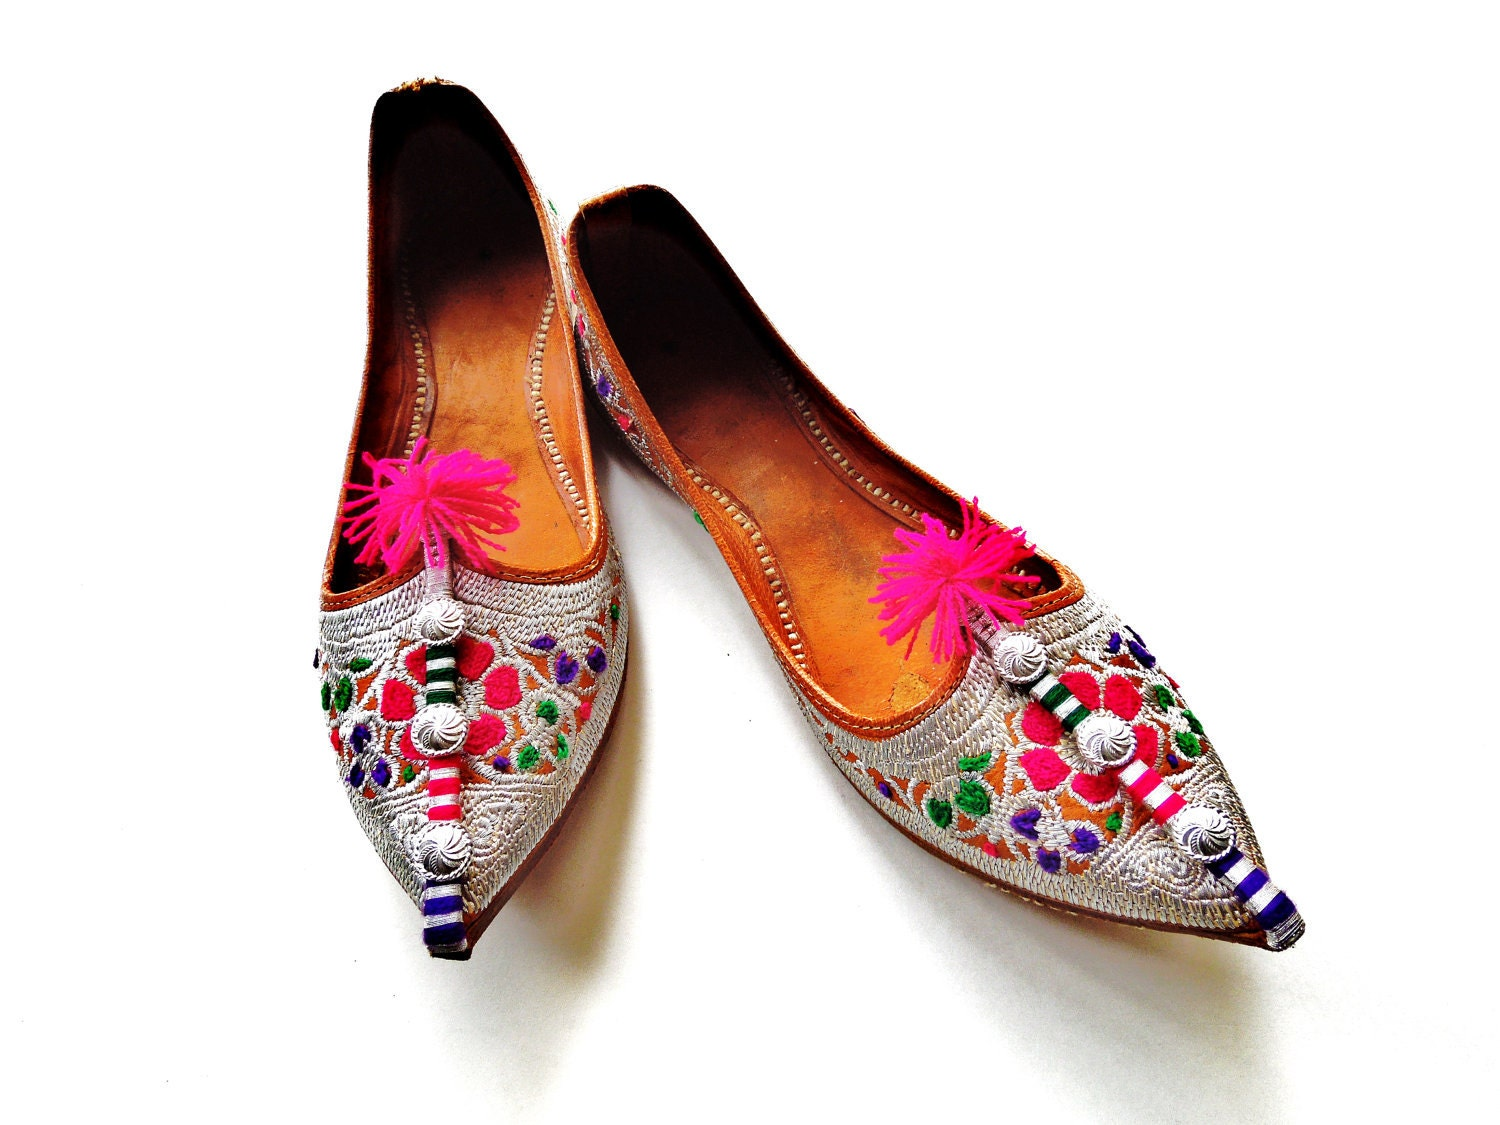 Gold slip ons kohlapuri jutti slippers. Fancy indian shoes or Pakistani khussa wear with kundan to jazz up your outfit or as bridal shoes.